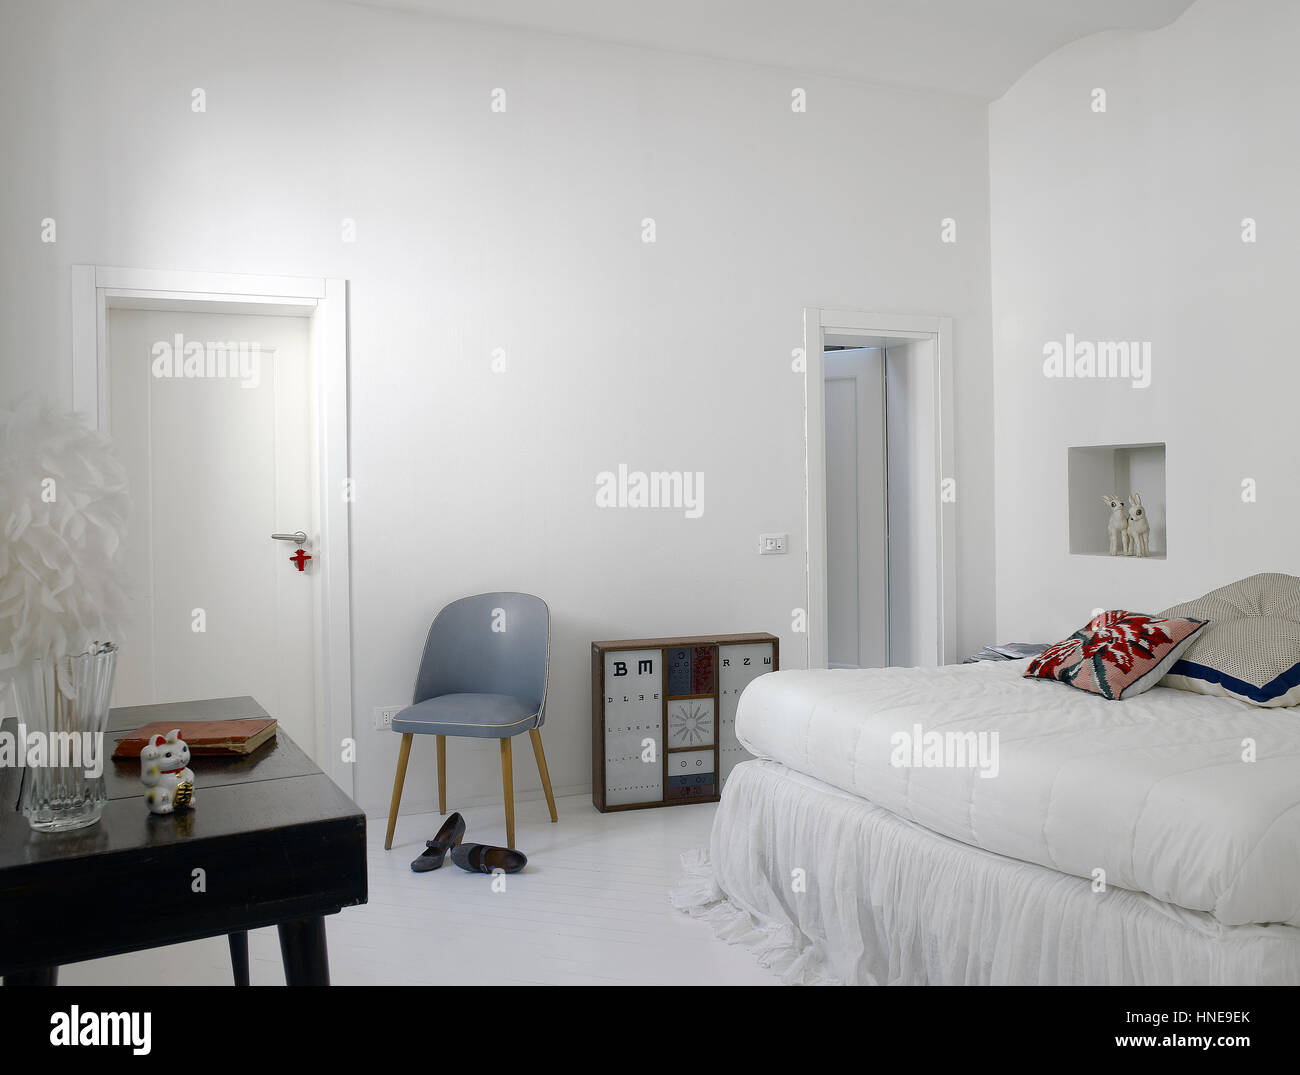 Interior Of A Minimal Bedroom In A Private Home   Stock Image